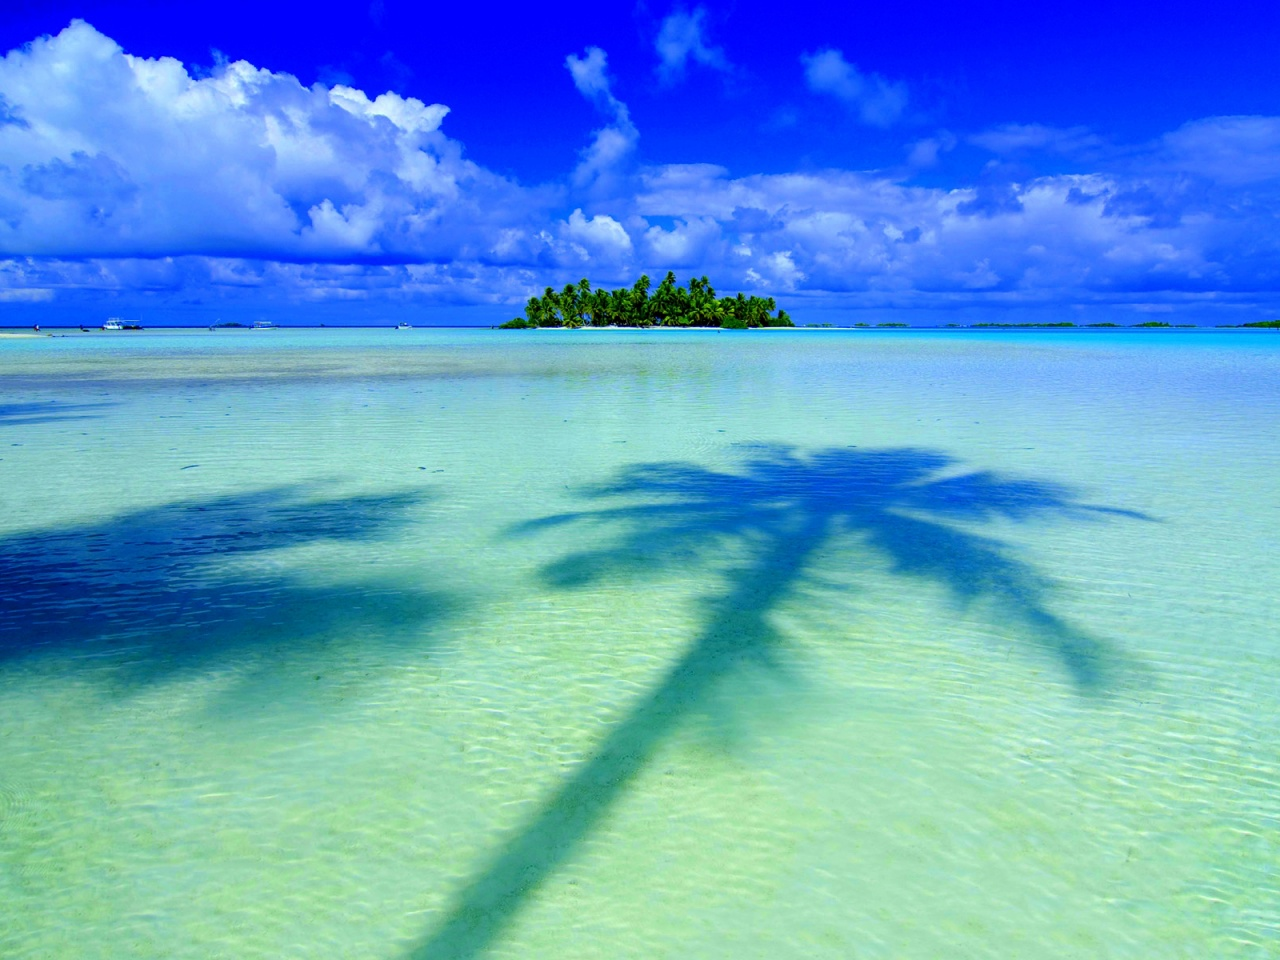 free 1280X960 Tropical Island Panorama 1280x960 wallpaper screensaver ...